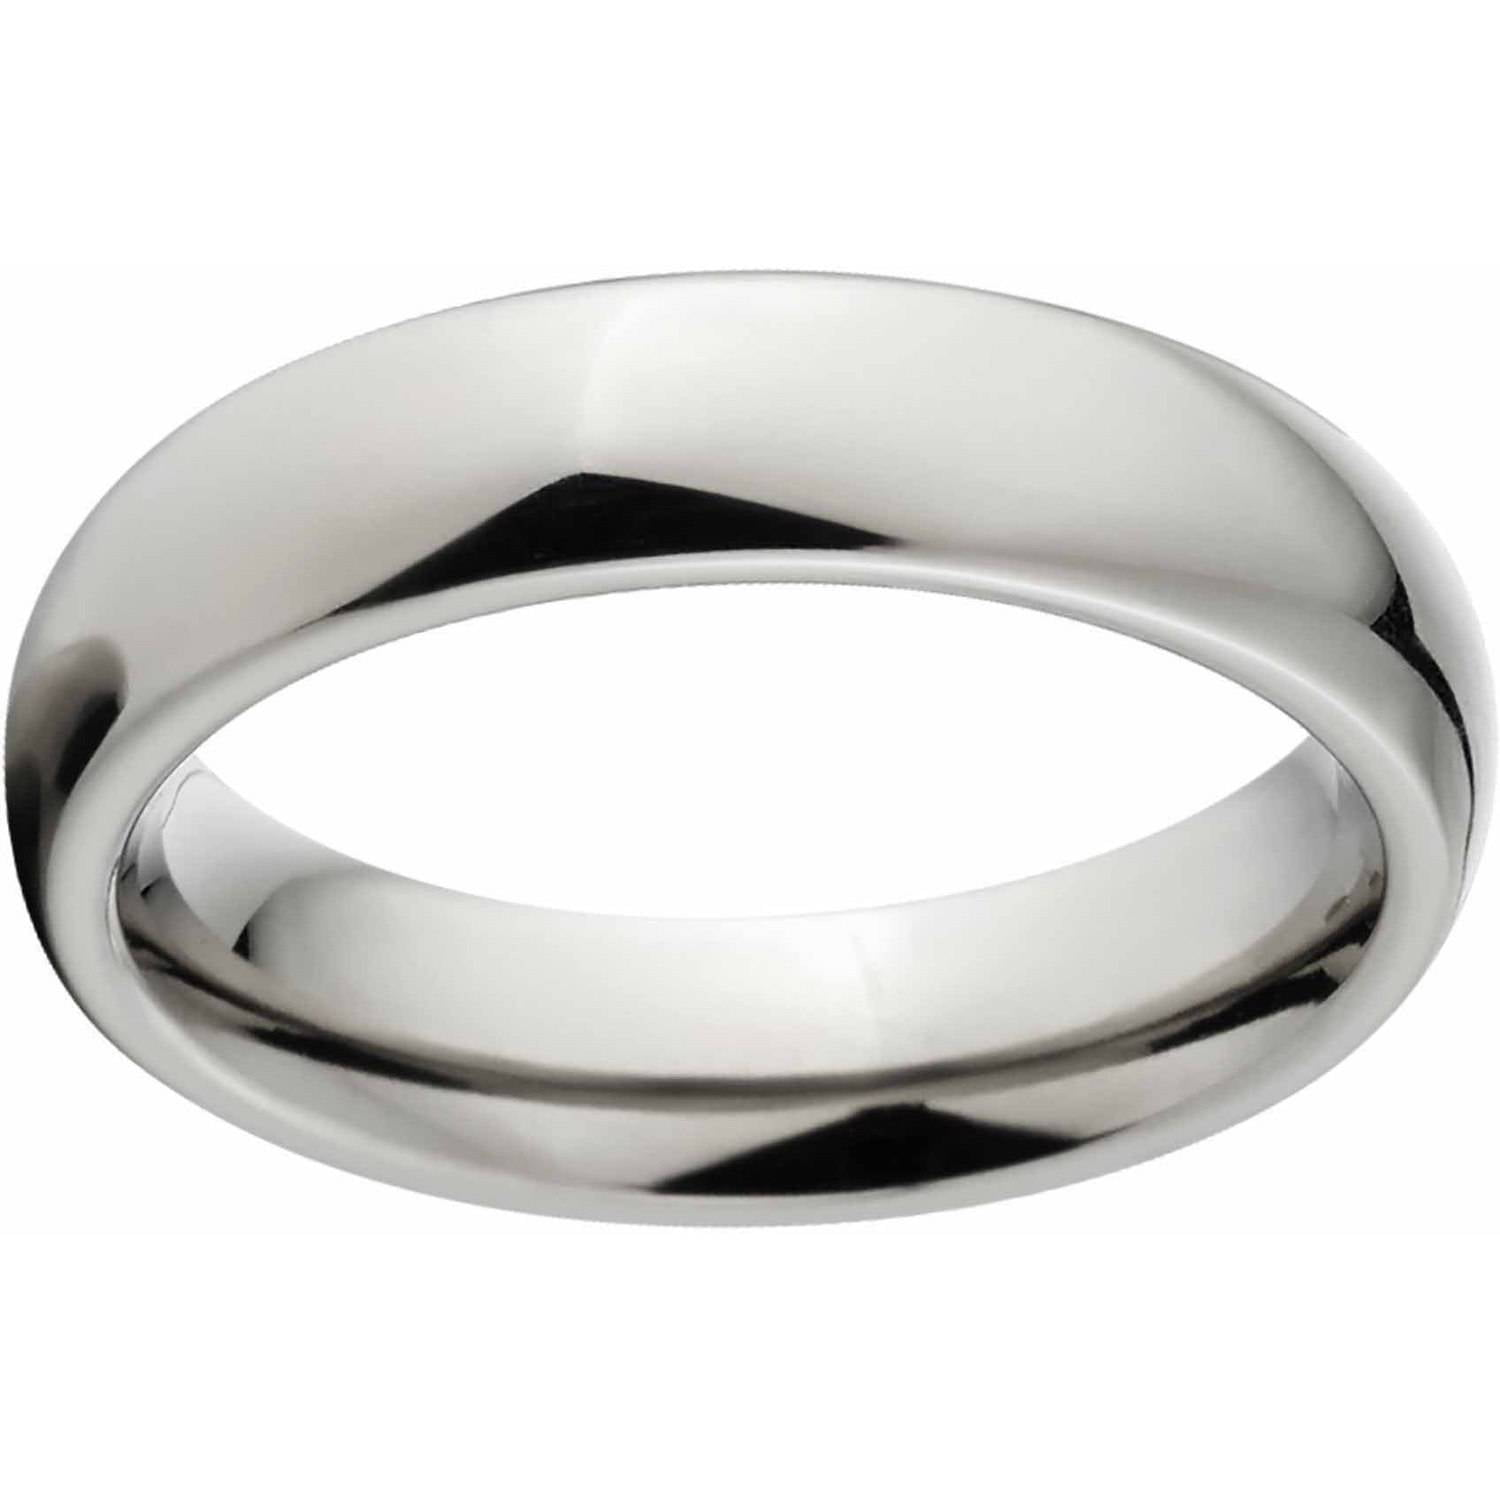 Polished 4mm Titanium Wedding Band with Comfort Fit Design Walmartcom